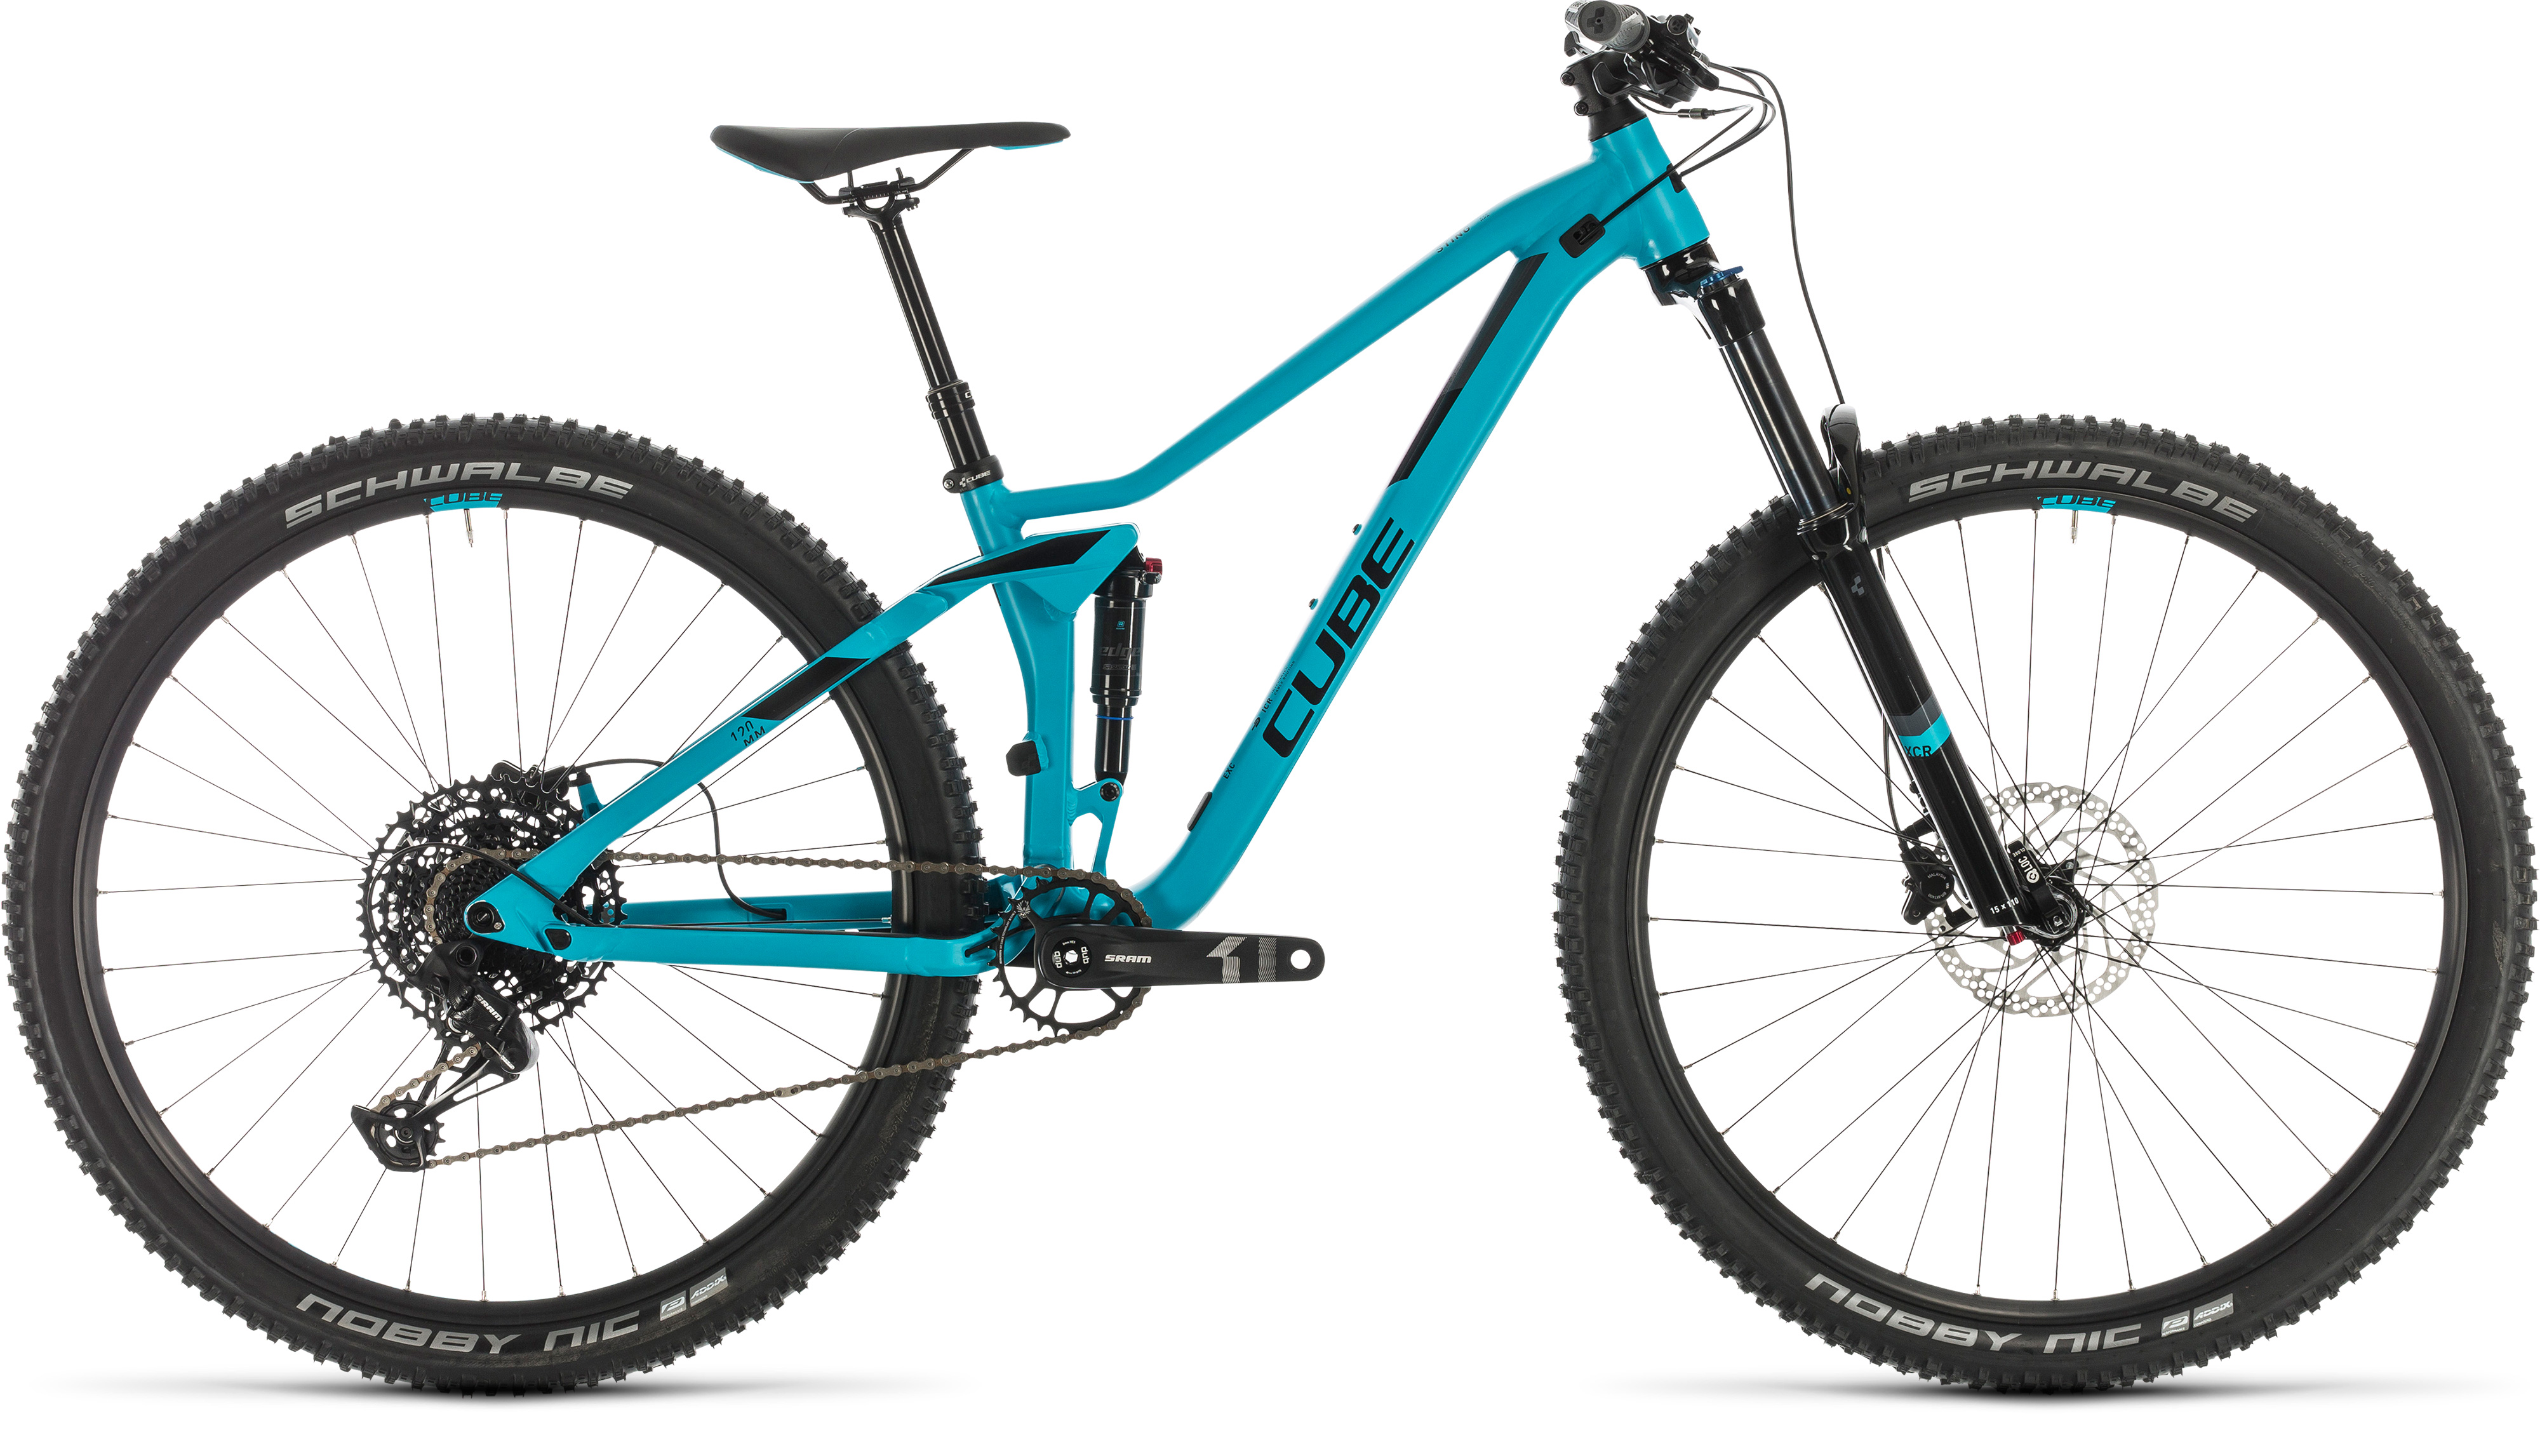 Cube Sting WS 120 EXC 29 (2020)